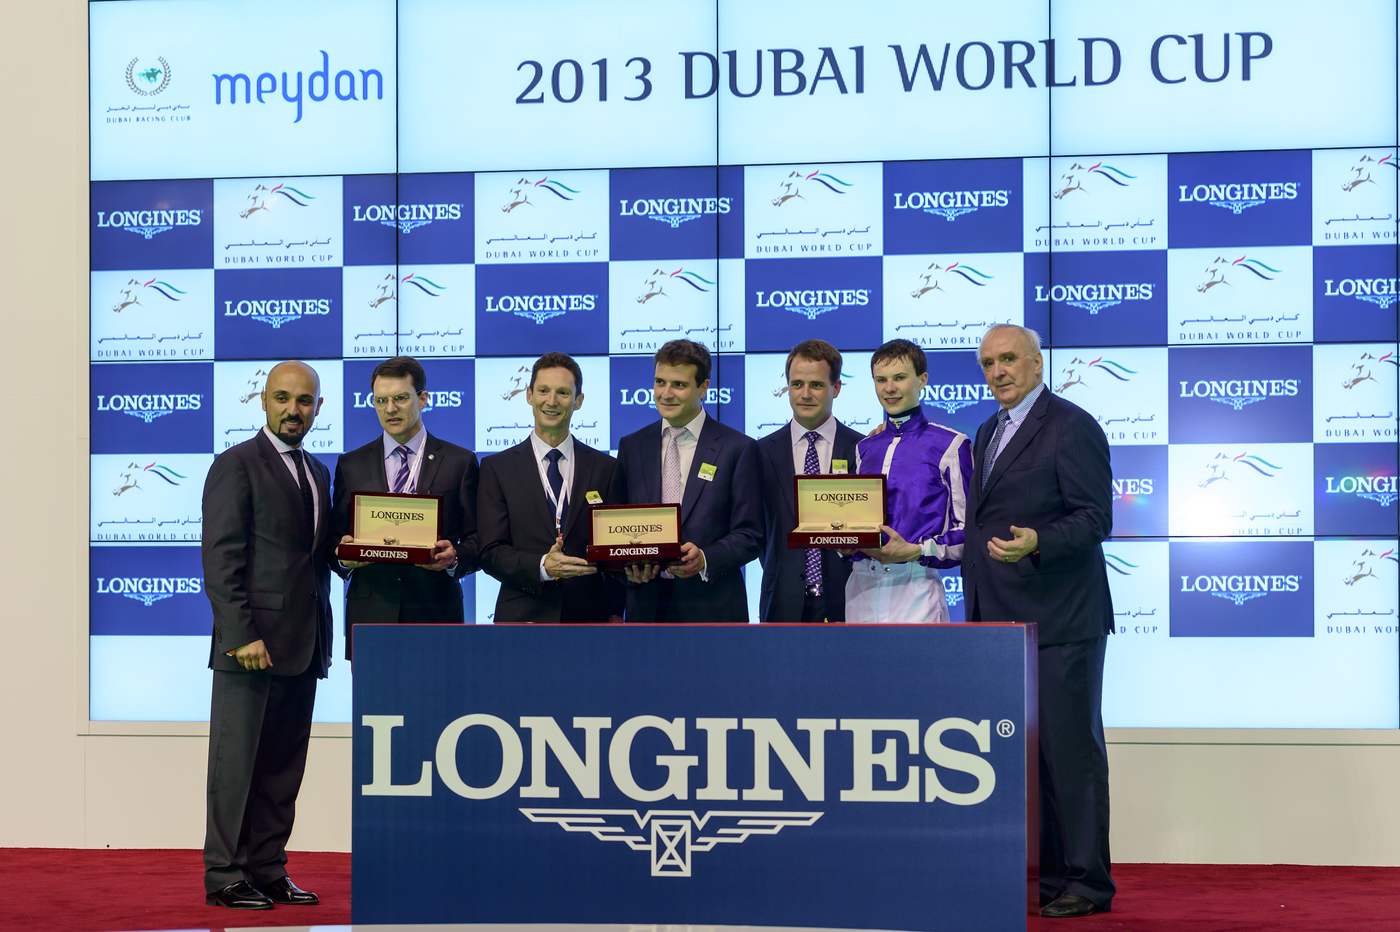 Longines Flat Racing Event: Longines adds its touch of elegance to the Dubai World Cup 3